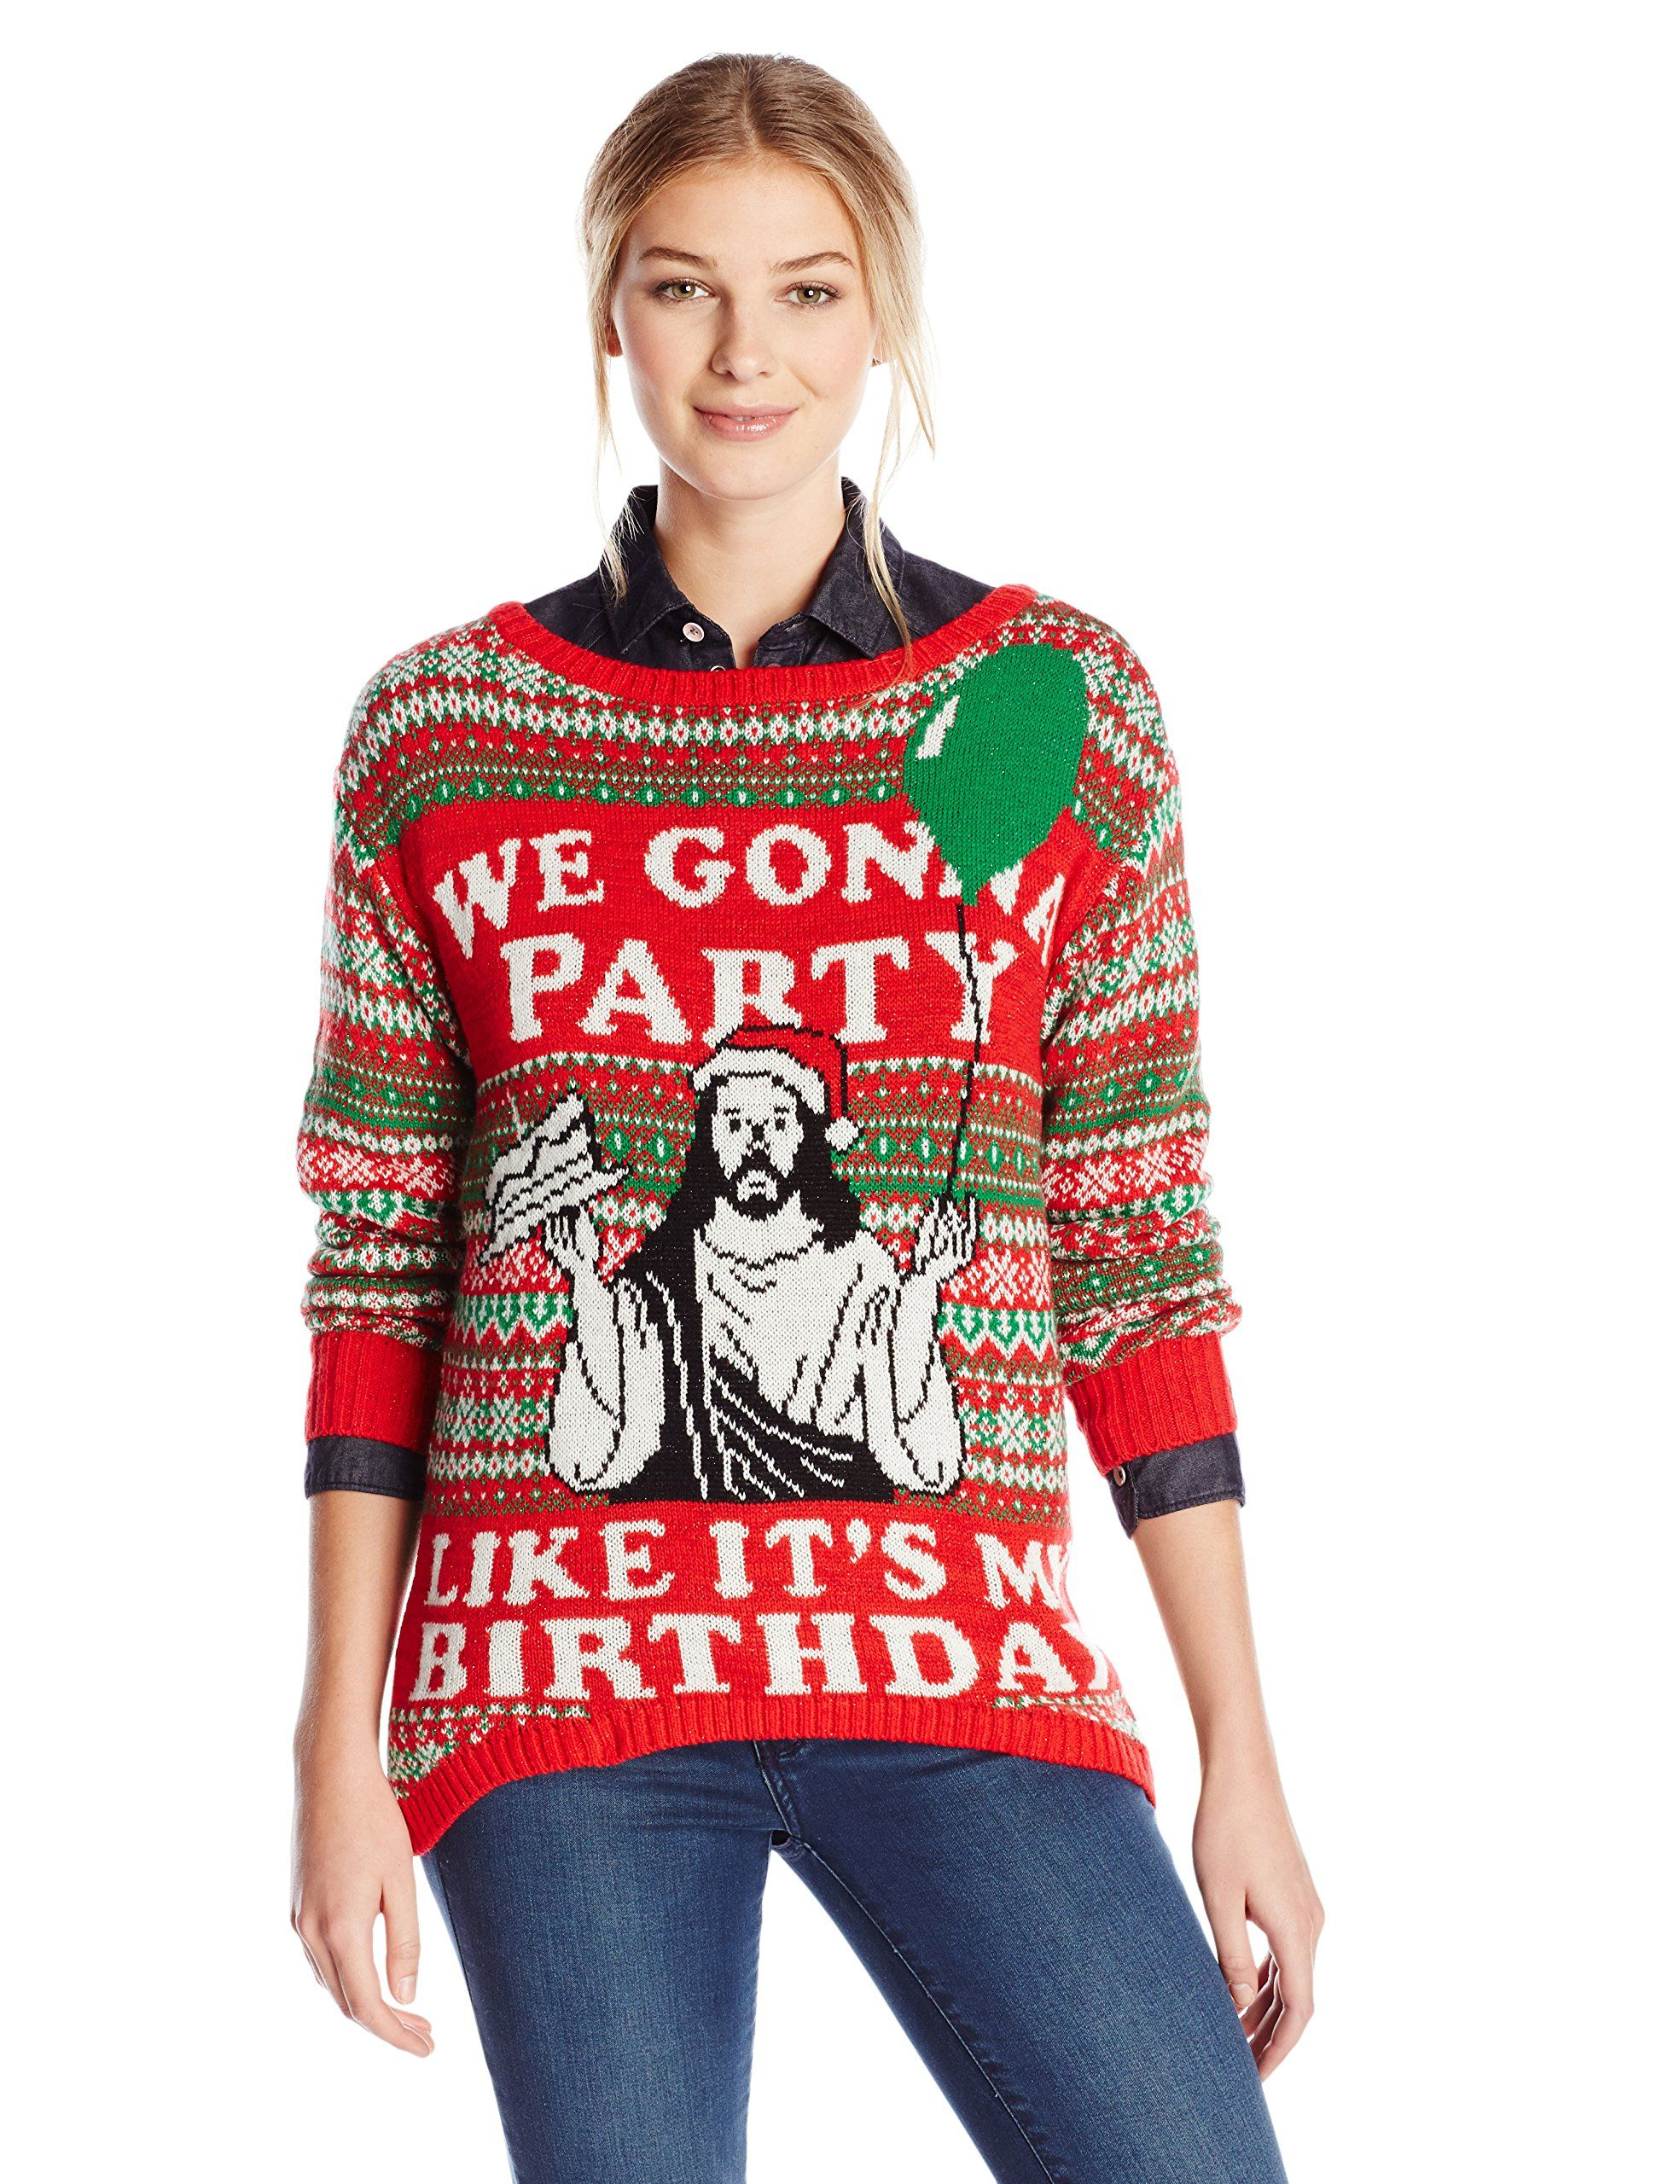 76cc01cf3b Isabella's Closet Women's We're Gonna Party Like It's My Birthday Jesus  Sweater, Red, Small